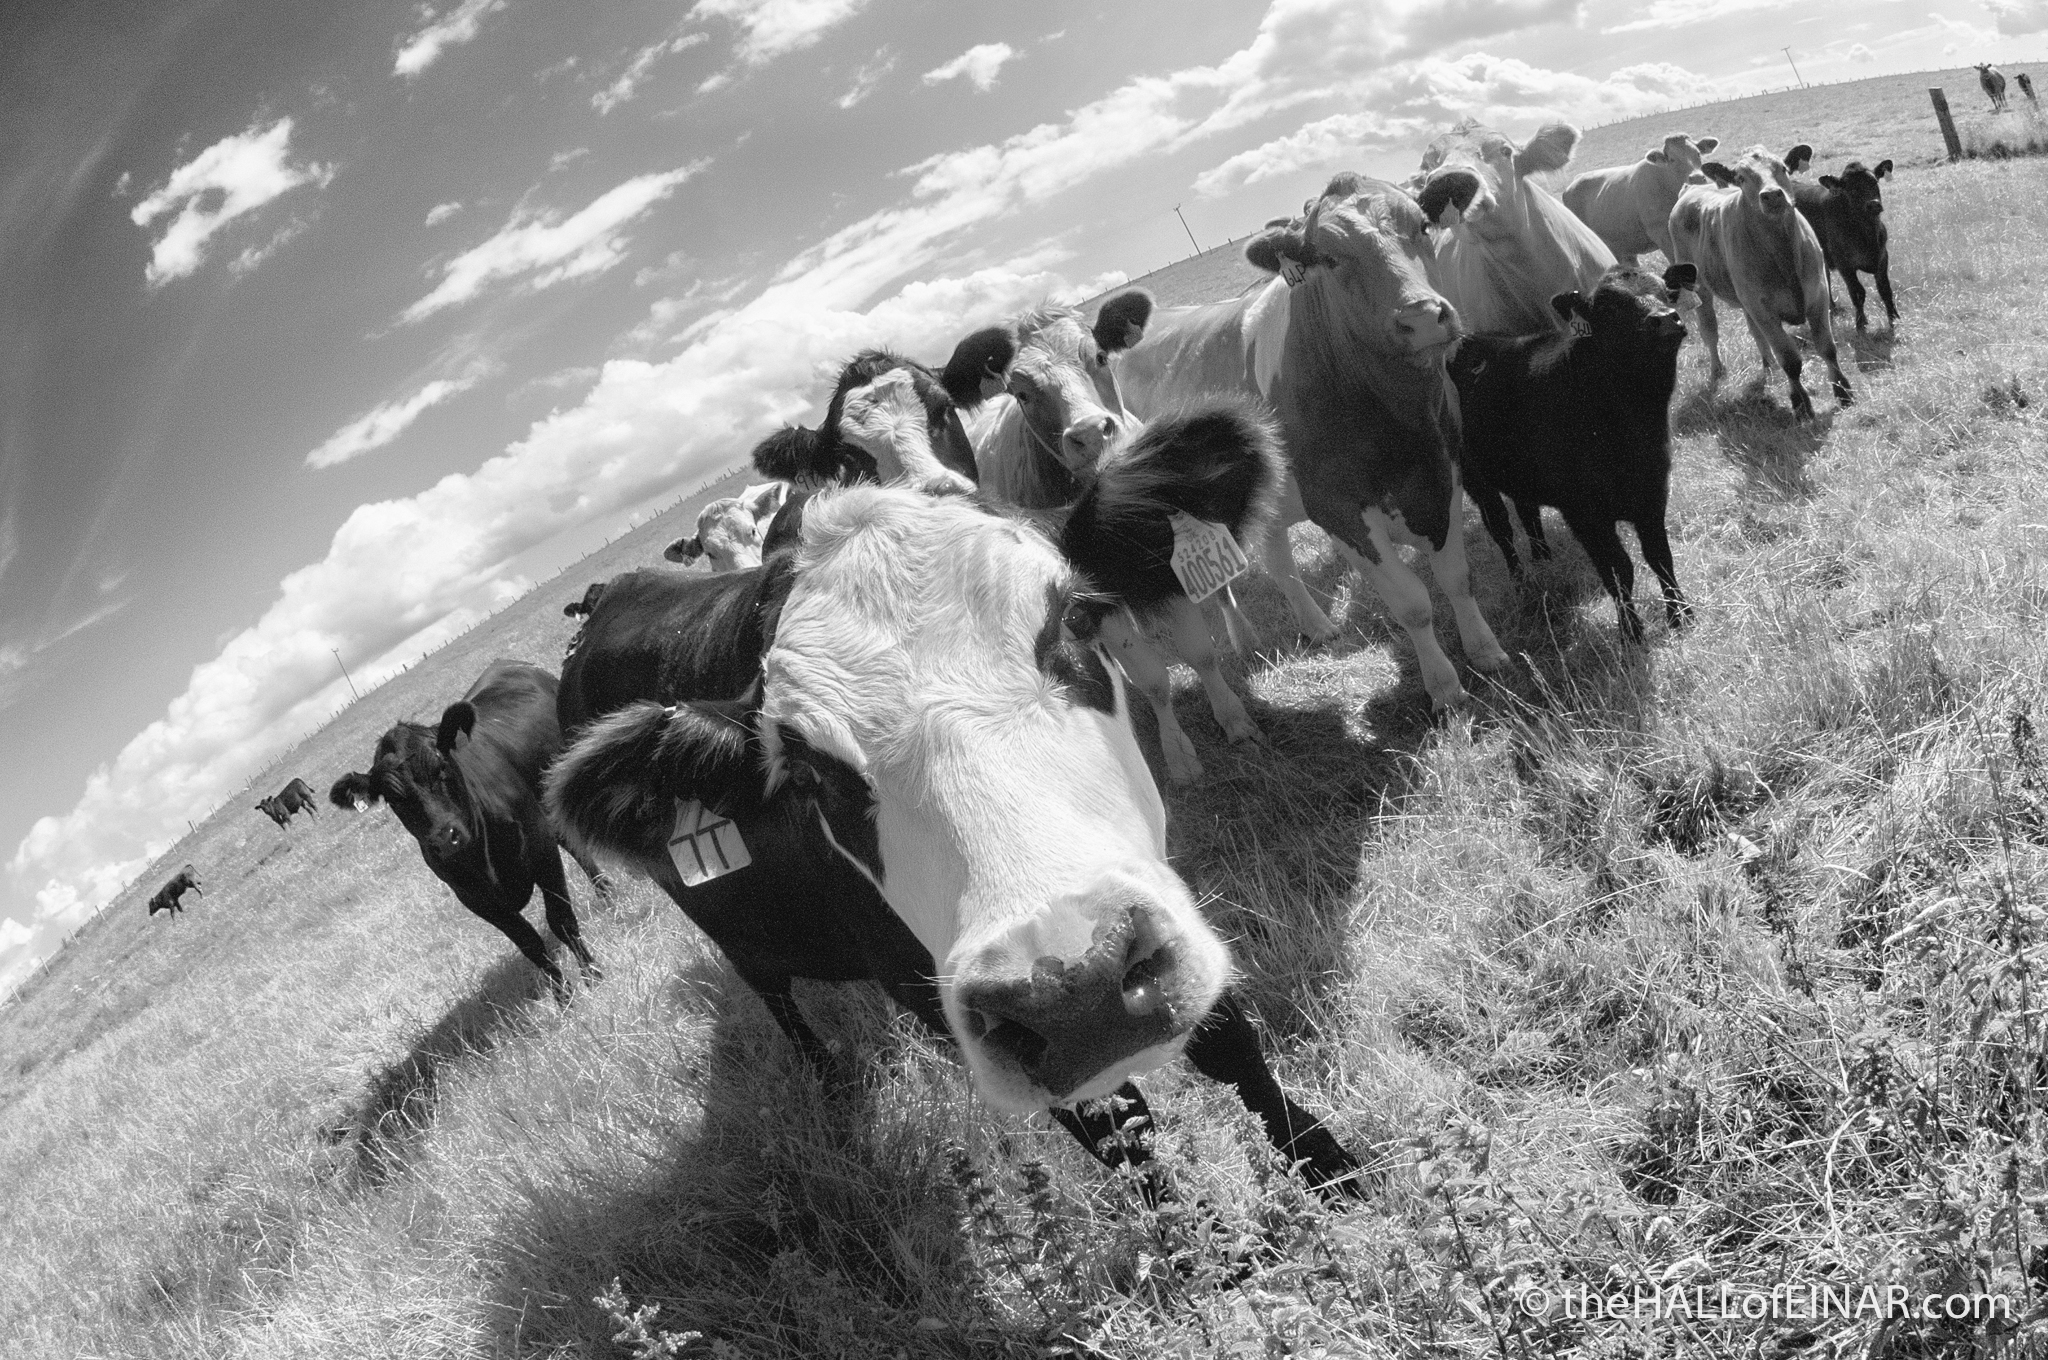 Leader of the herd - The Hall of Einar - photograph (c) David Bailey (not the)